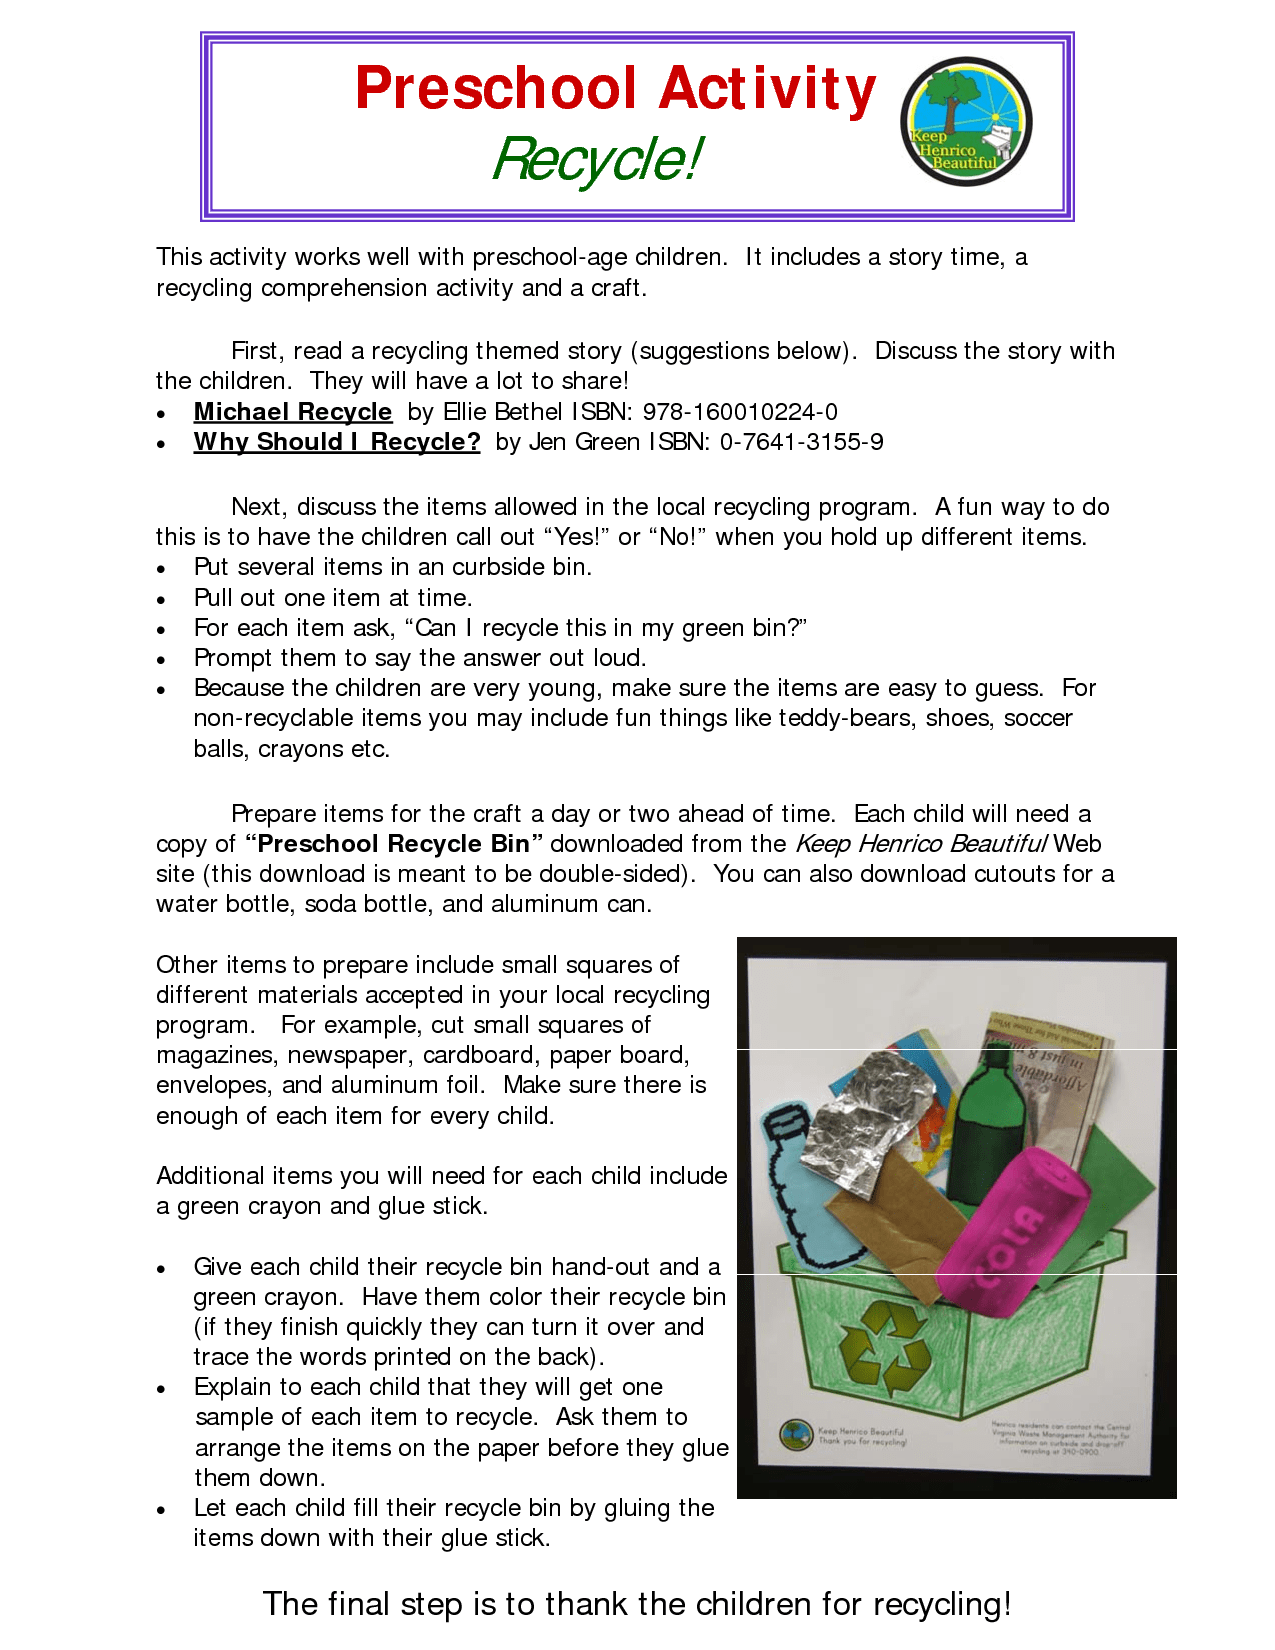 Recycling Preschool Activity Worksheet Link